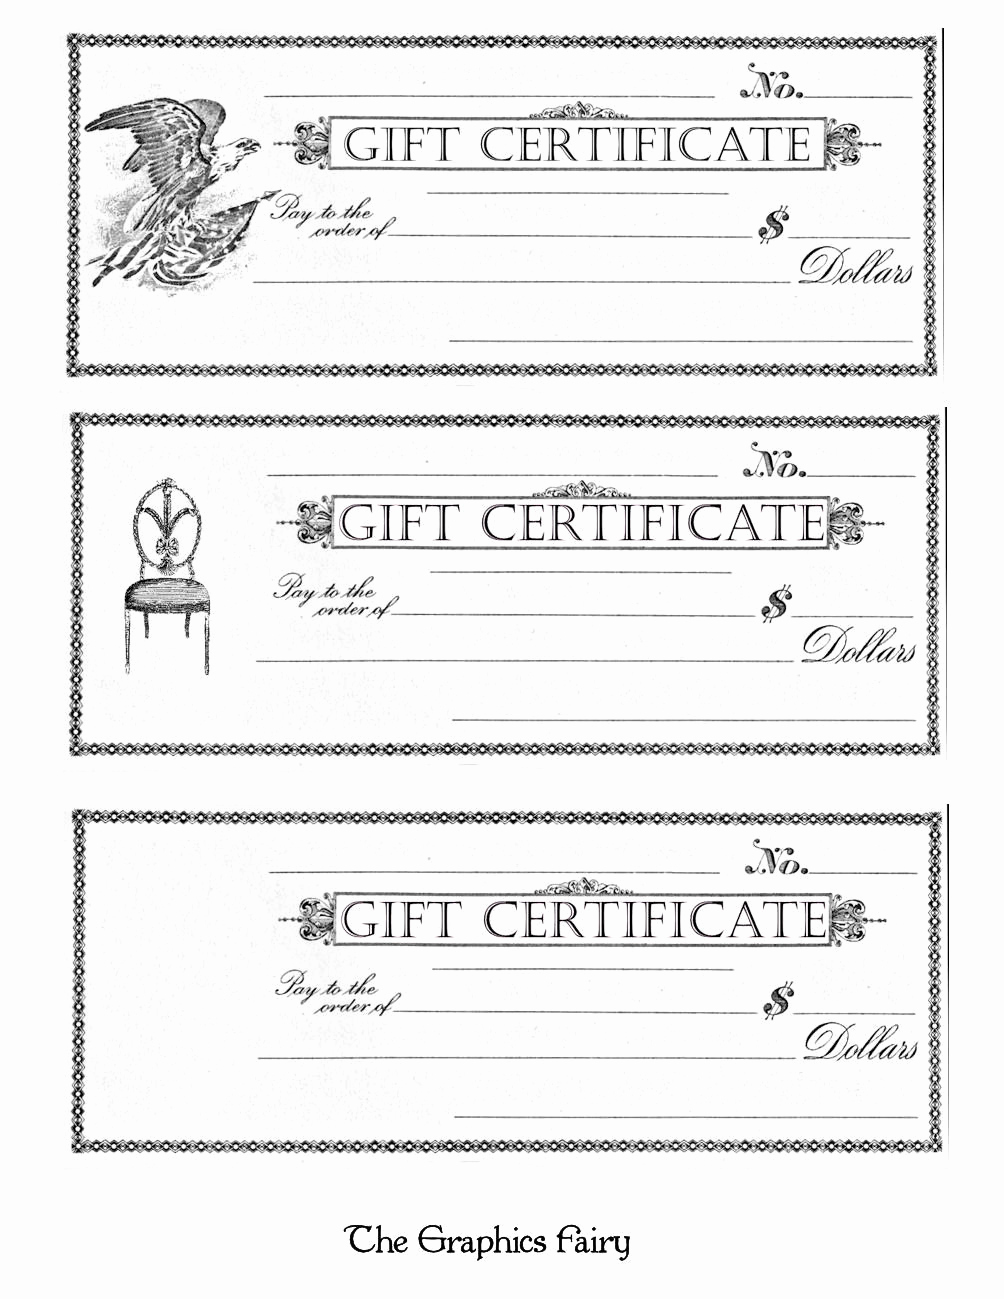 Email Gift Certificate Template Lovely Free Printable Gift Certificates the Graphics Fairy